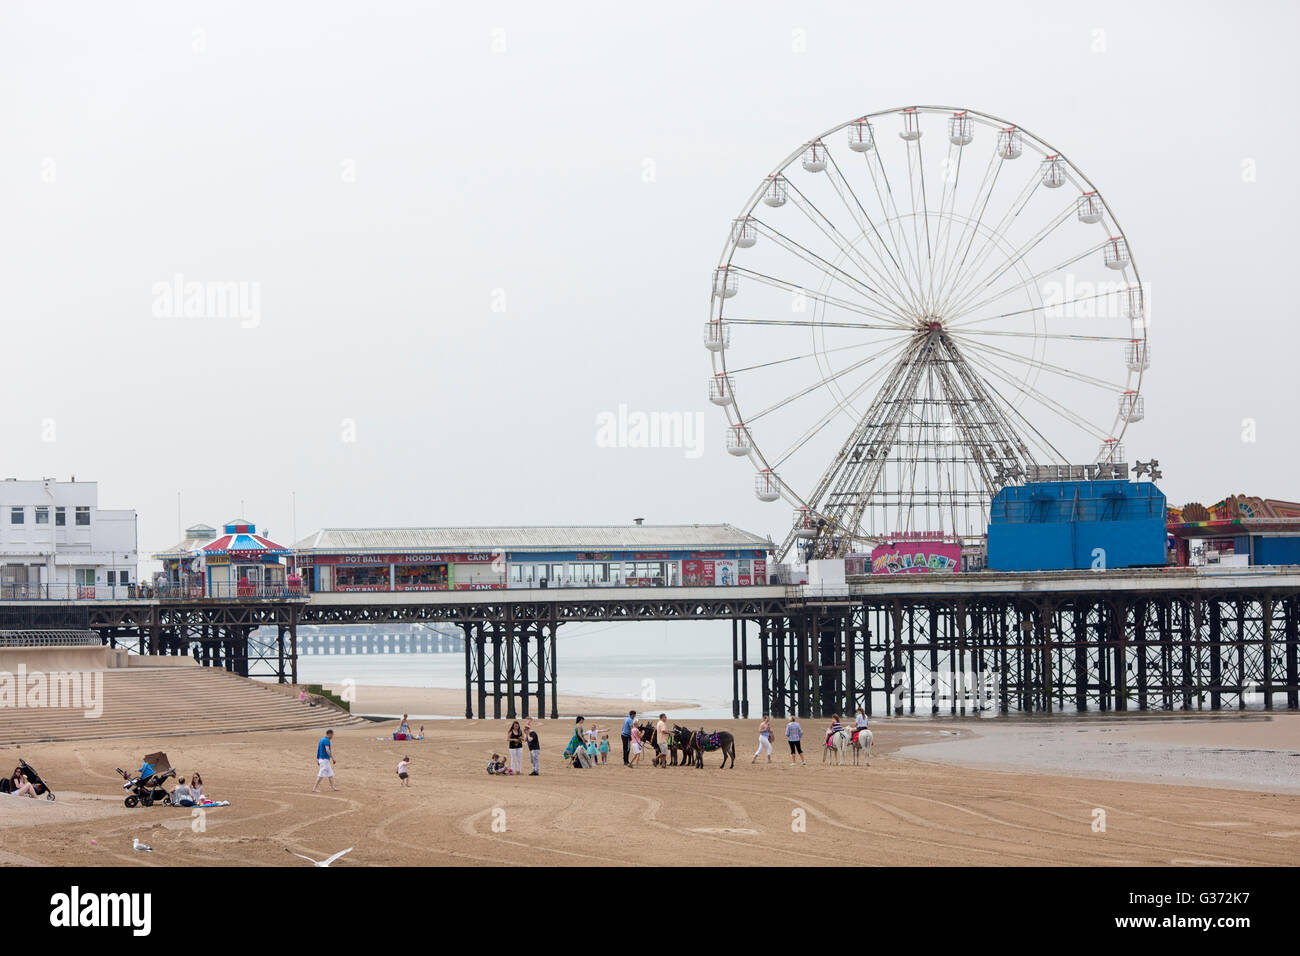 Warm weather at Blackpool , England , today (Tuesday 7th June 2016) A view of the beach and the Central Pier. - Stock Image